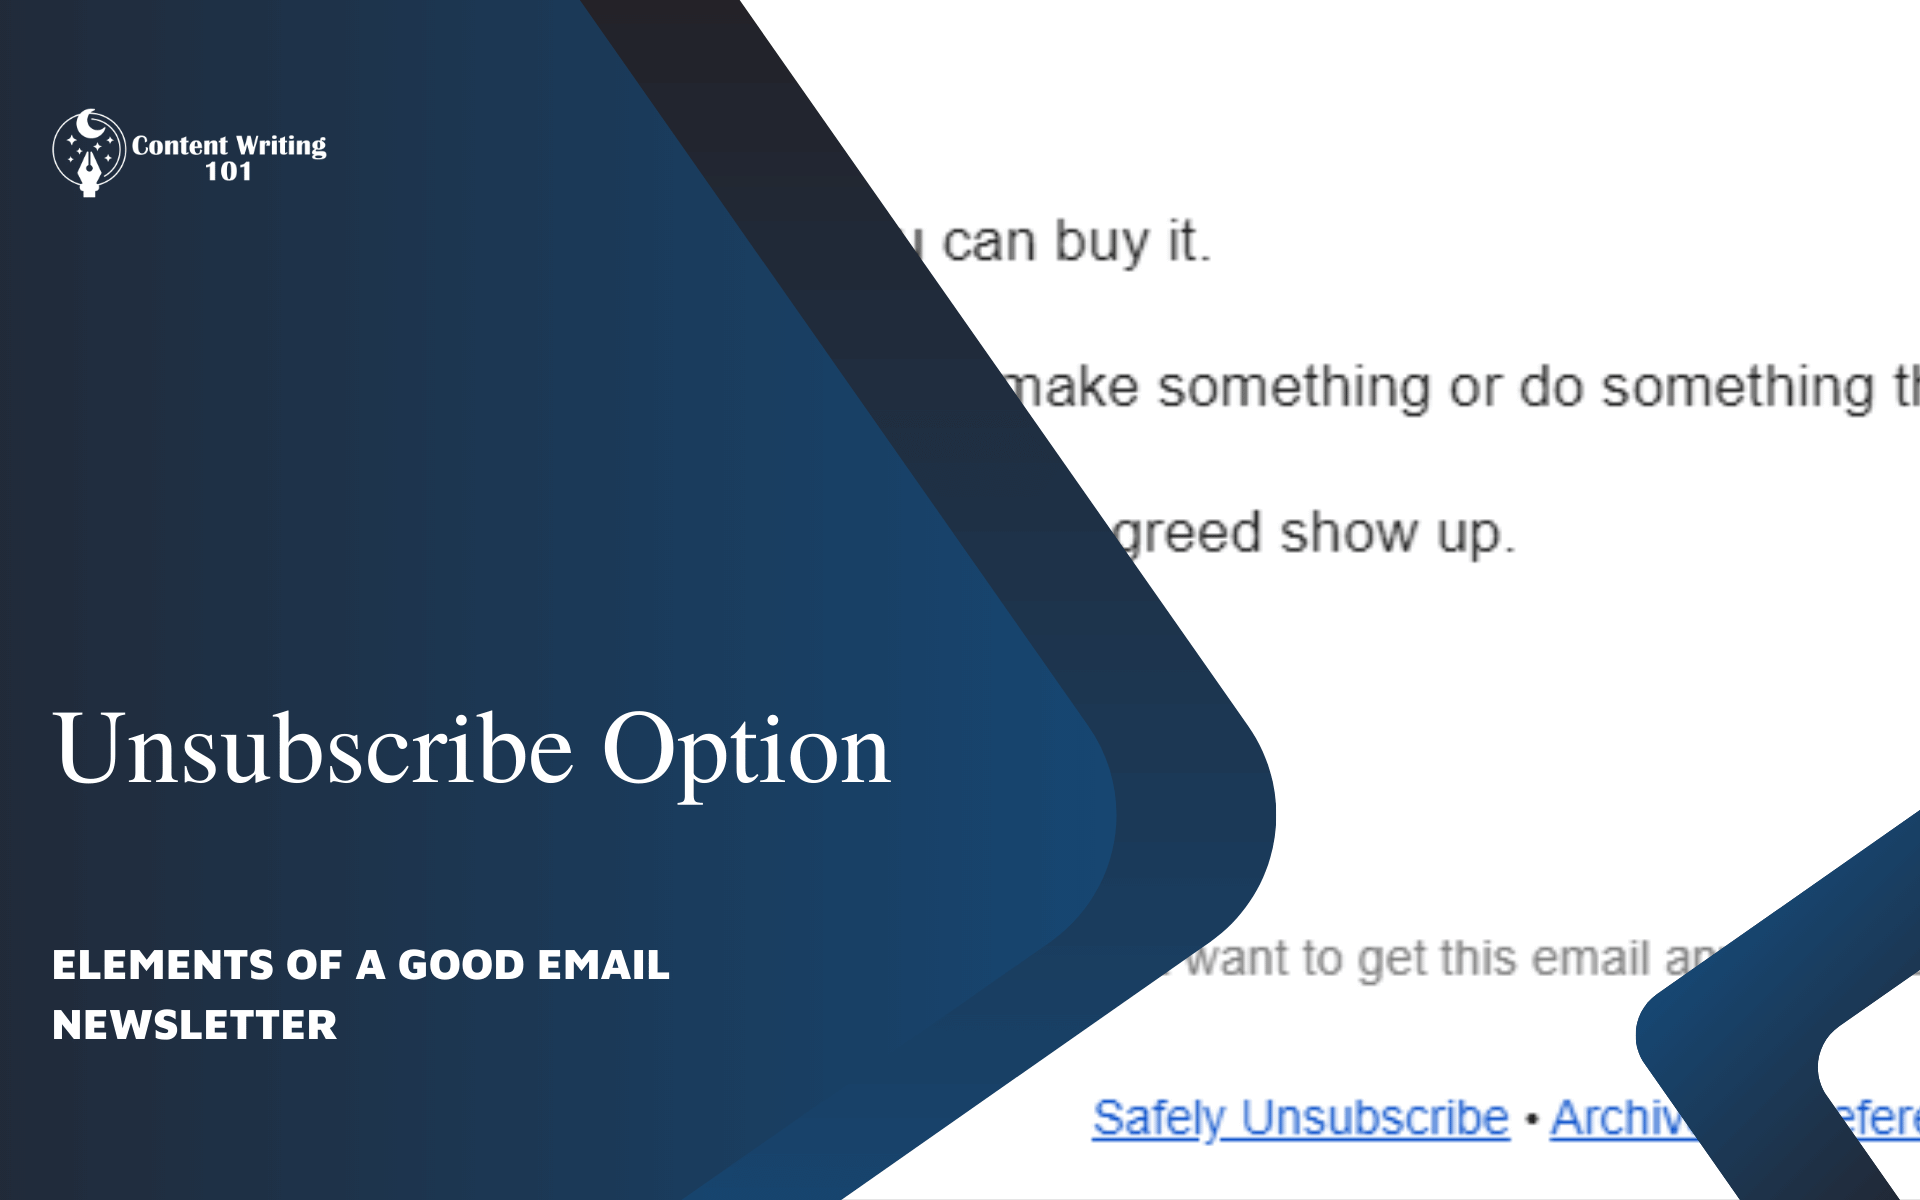 11. Unsubscribe Option